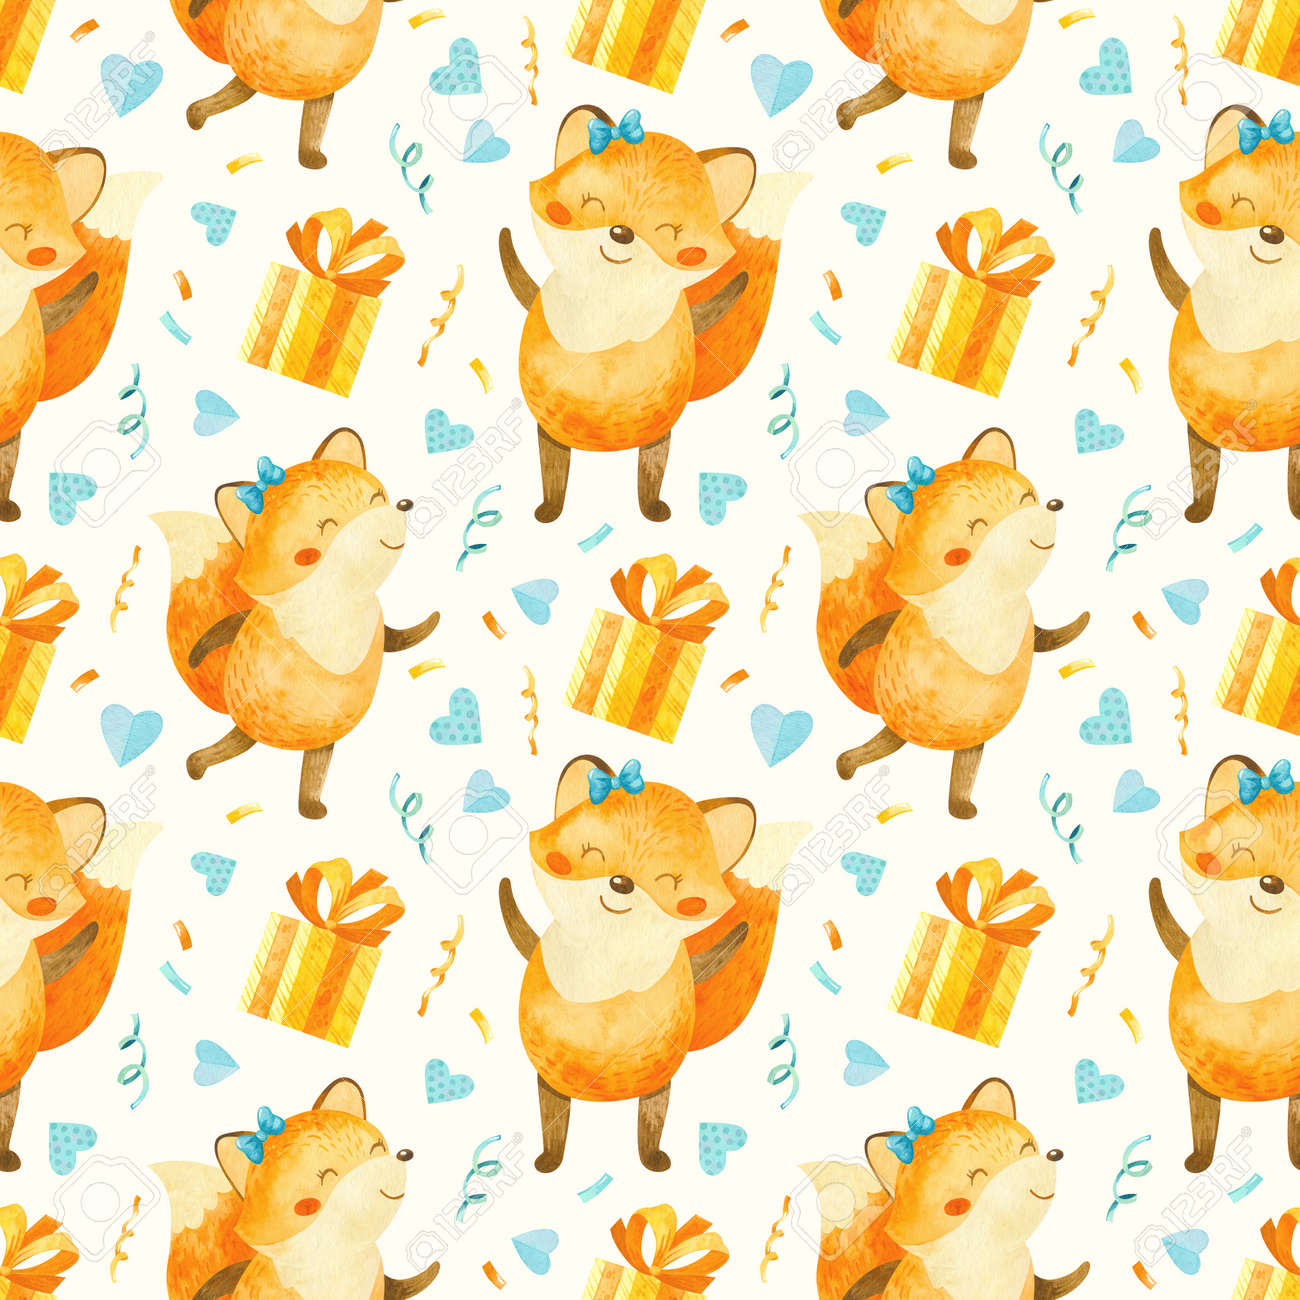 Seamless pattern with happy fox cub with gifts, birthday elements. Cute watercolor clipart for children's party decoration, baby showers. Seamless backdrop on white background - 173442230